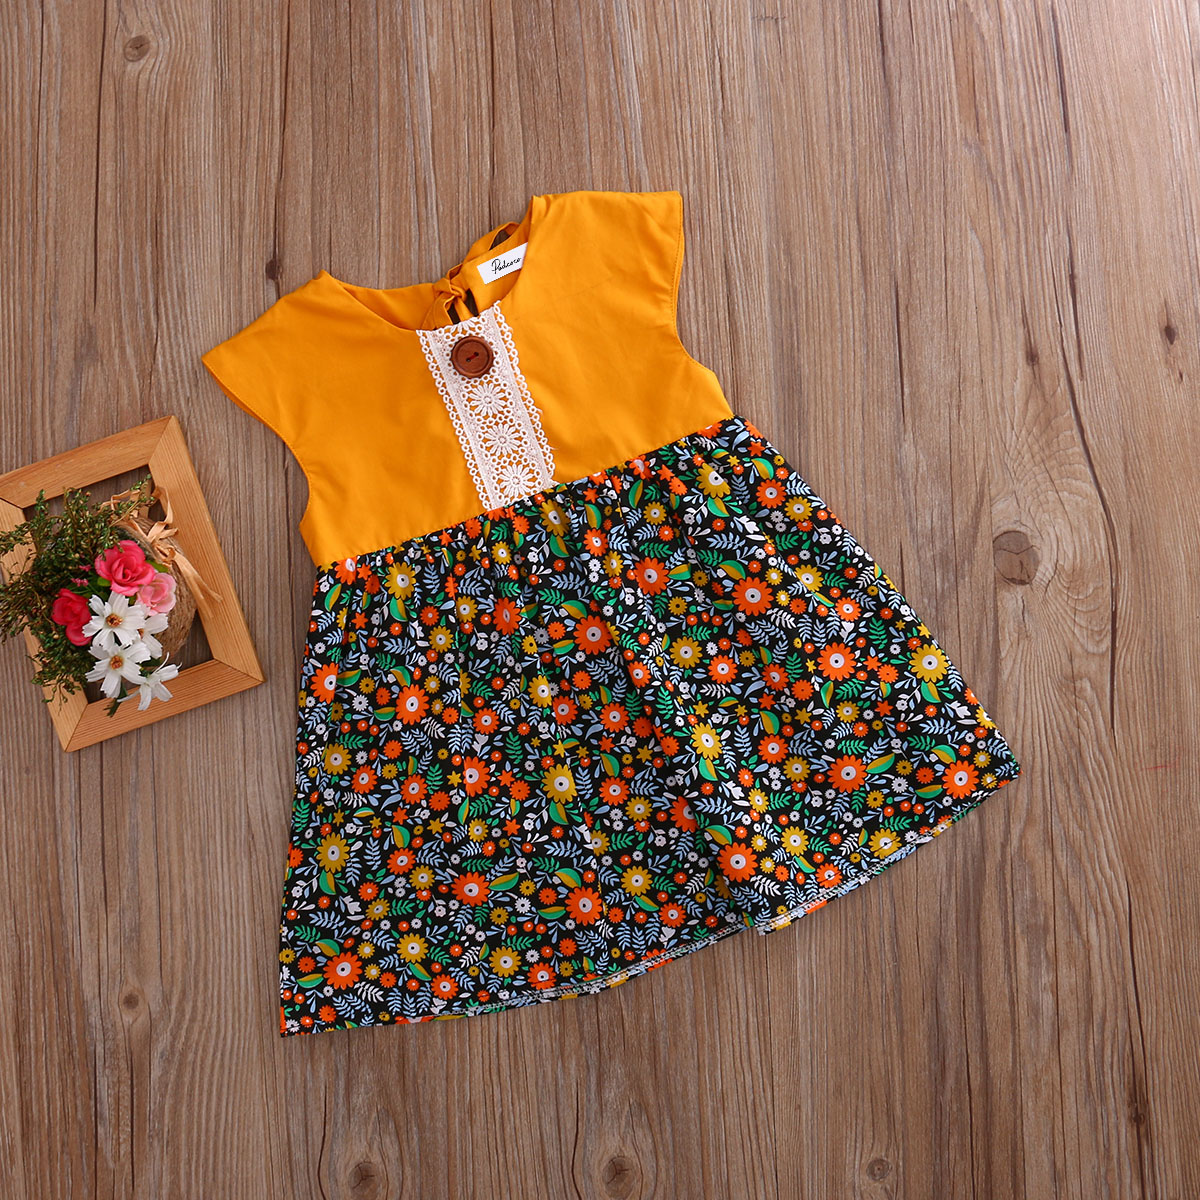 Bohemian-Floral-Toddler-Baby-Kids-Girls-Summer-Lace-Flower-Sundress-Party-Dress-Clothes-0-4T-4